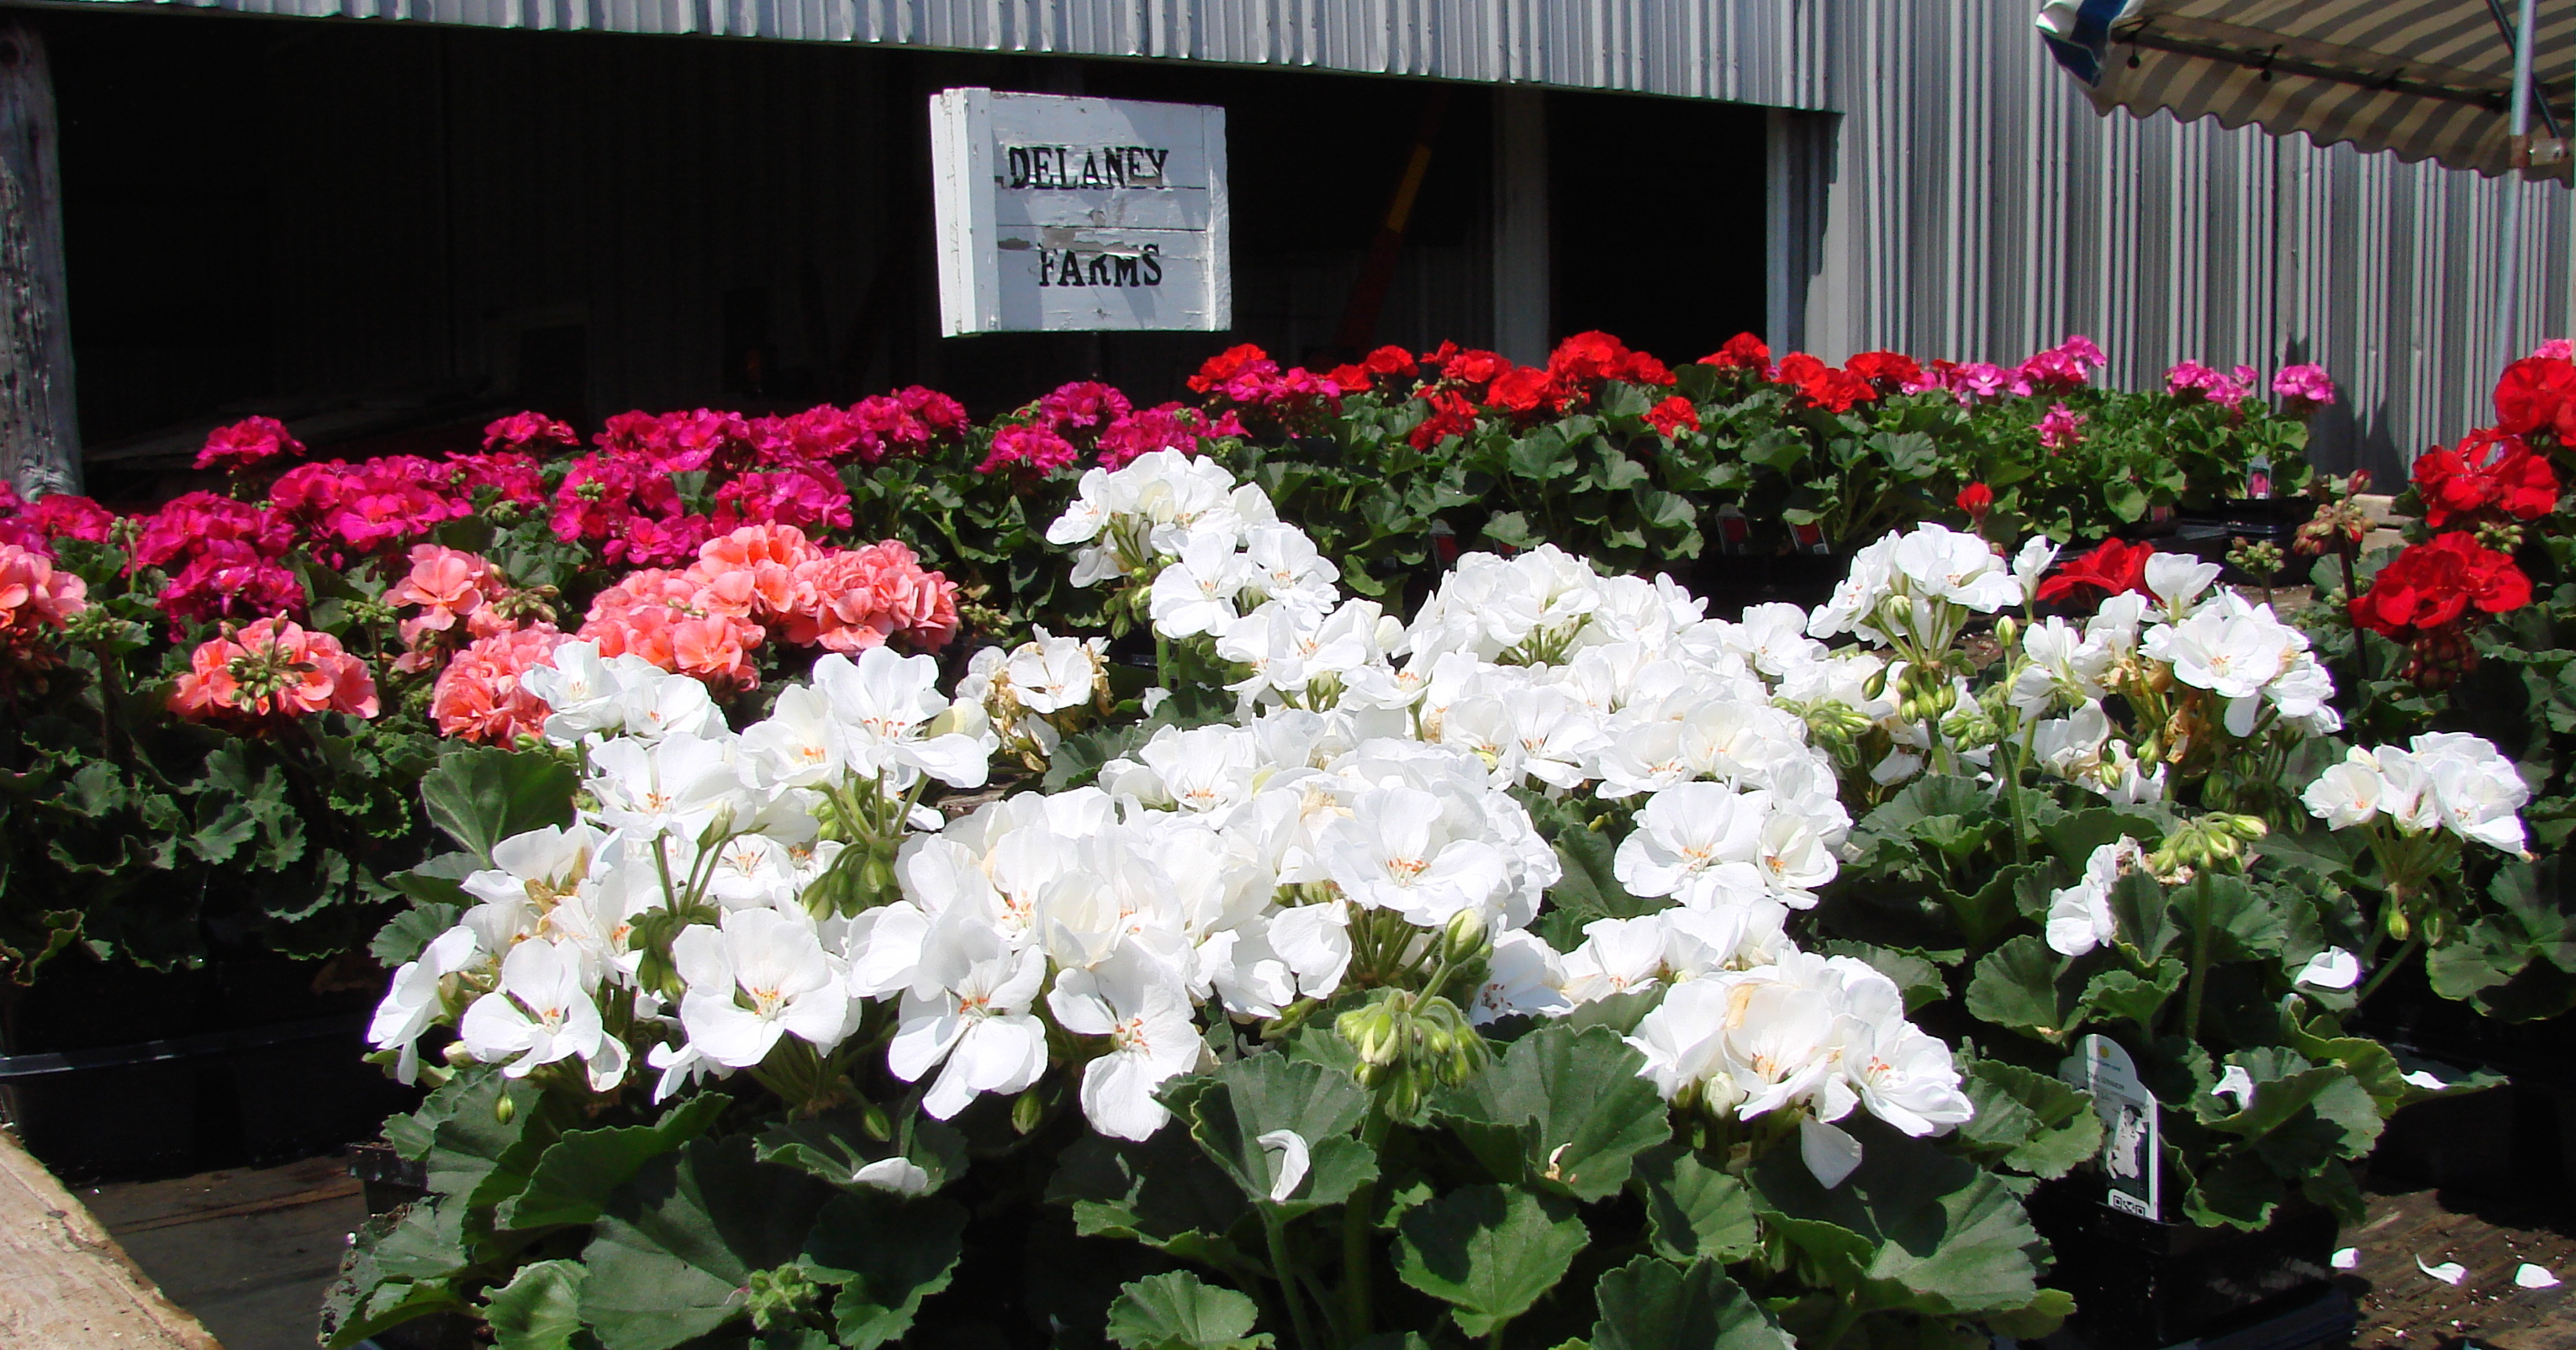 fresh-flowers-delaneys-farms